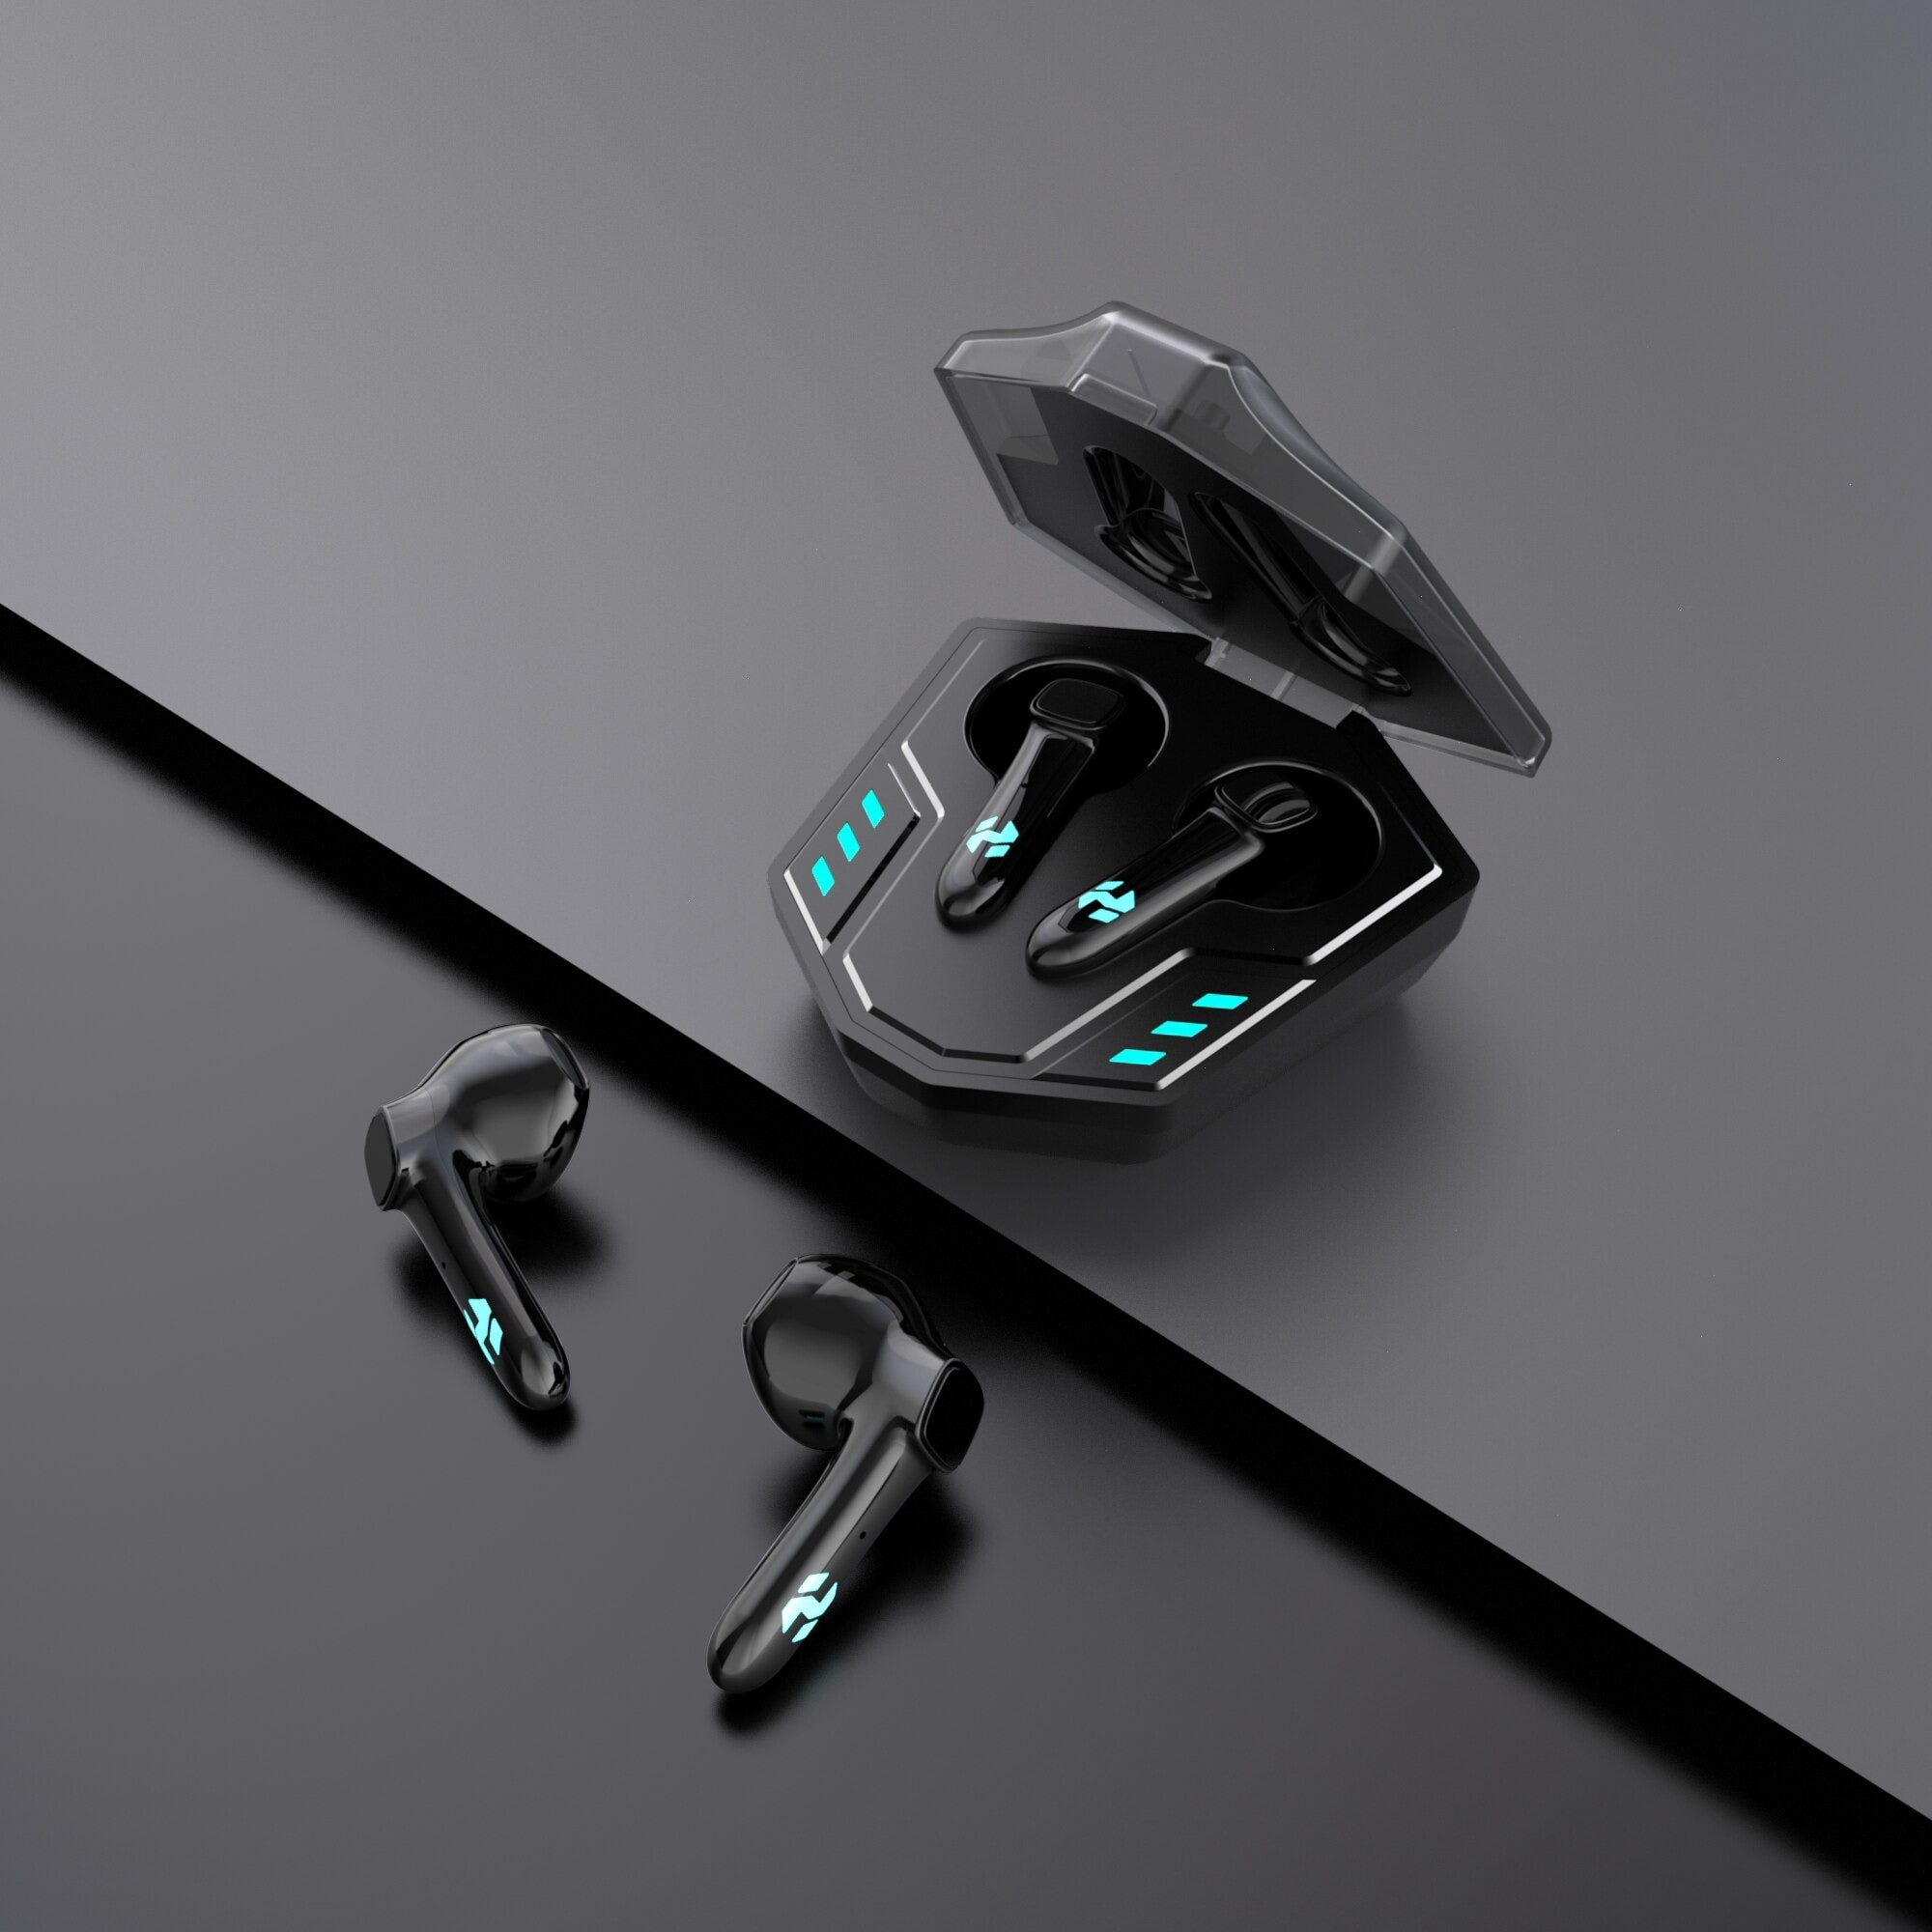 TWS Bluetooth Gamingx Headset 5.0 Heavy Bass True Wireless Stereo Earphones With Mic Noise Reduction Earbuds Black - 4